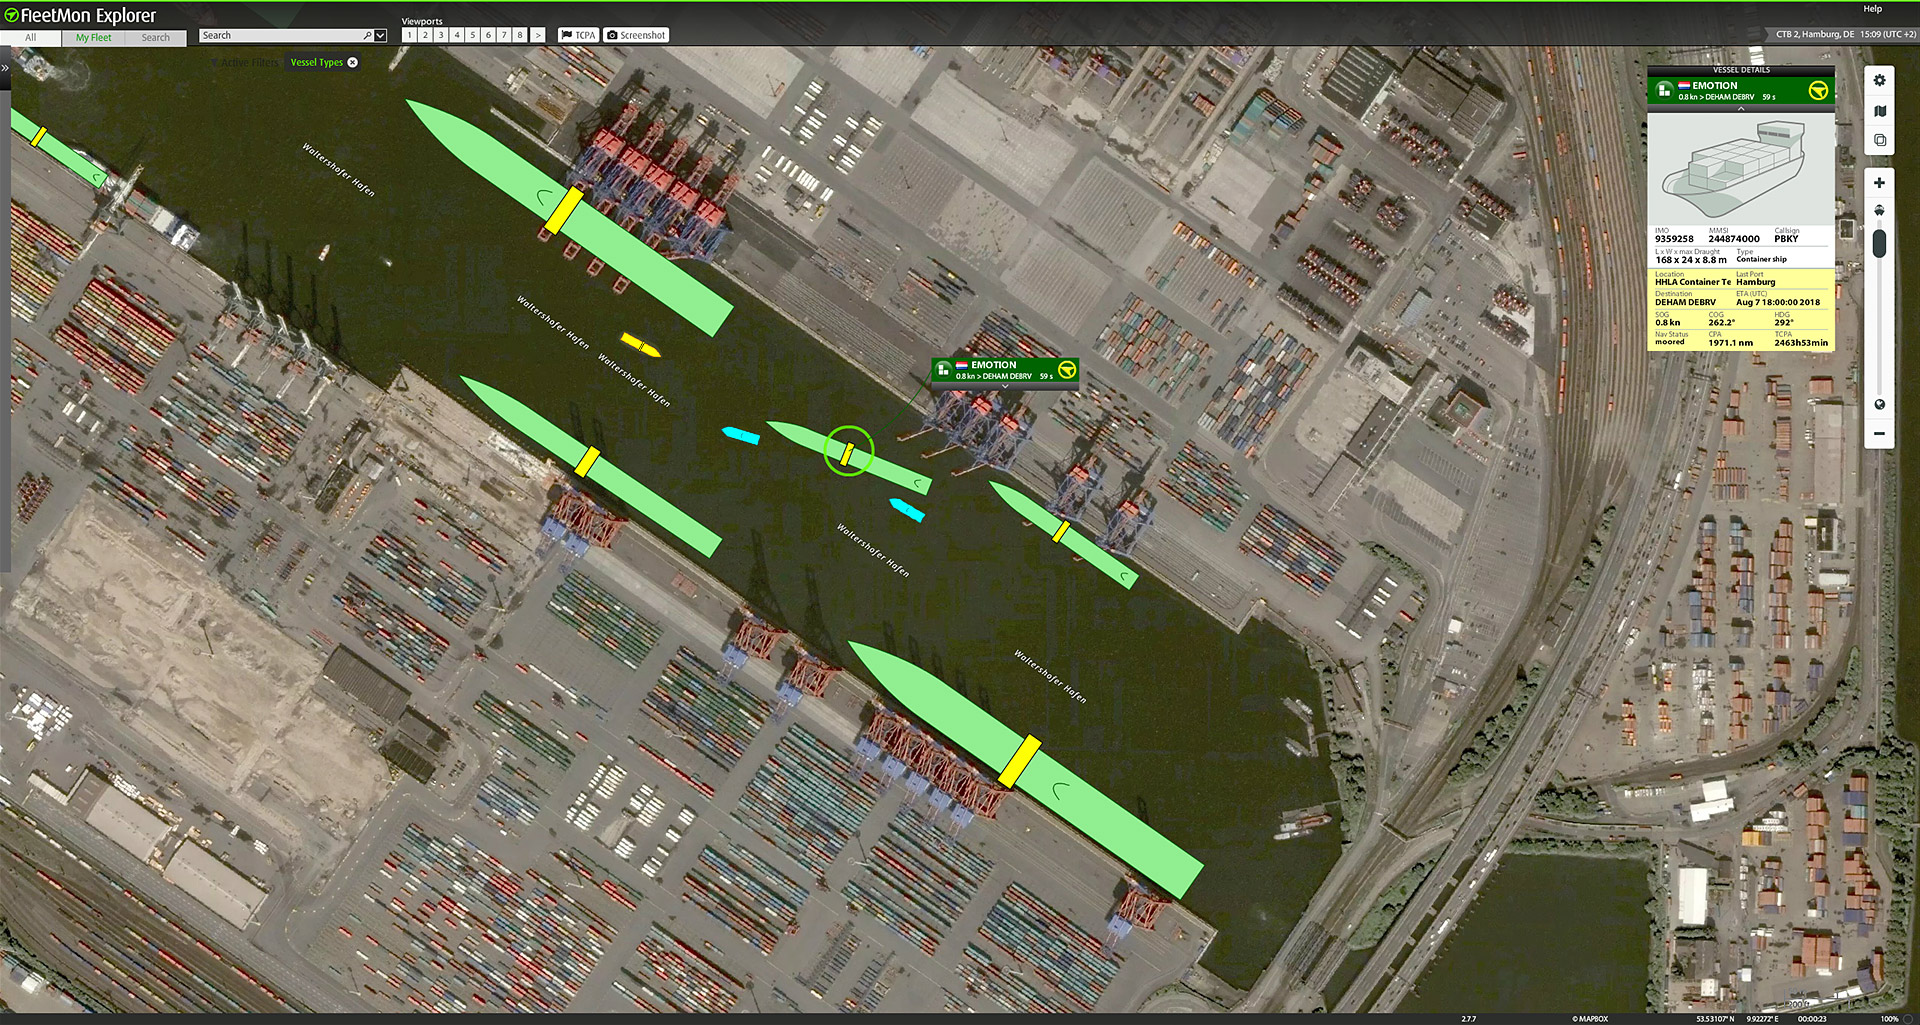 Live vessel tracking and monitoring with FleetMon Explorer on